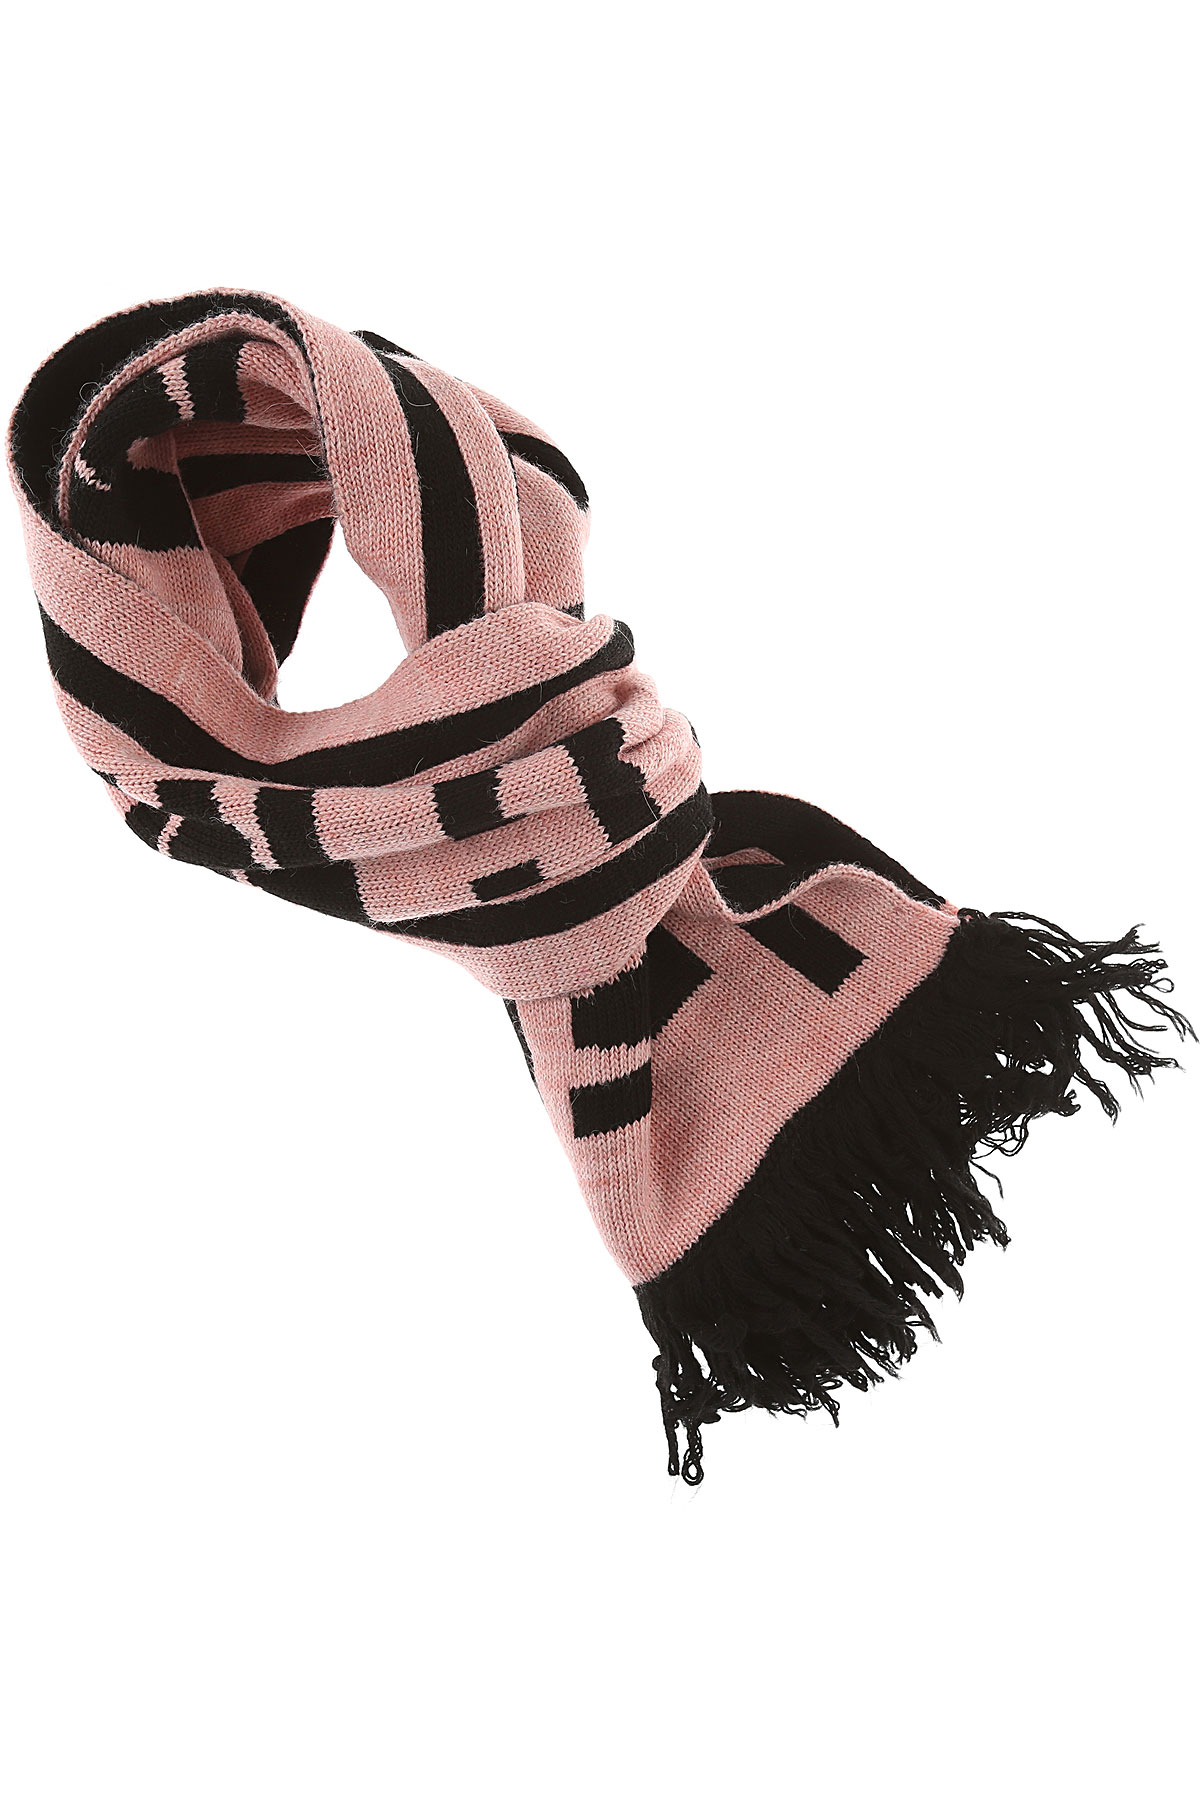 MSGM Kids Scarves for Girls, Pink, Acrylic, 2017